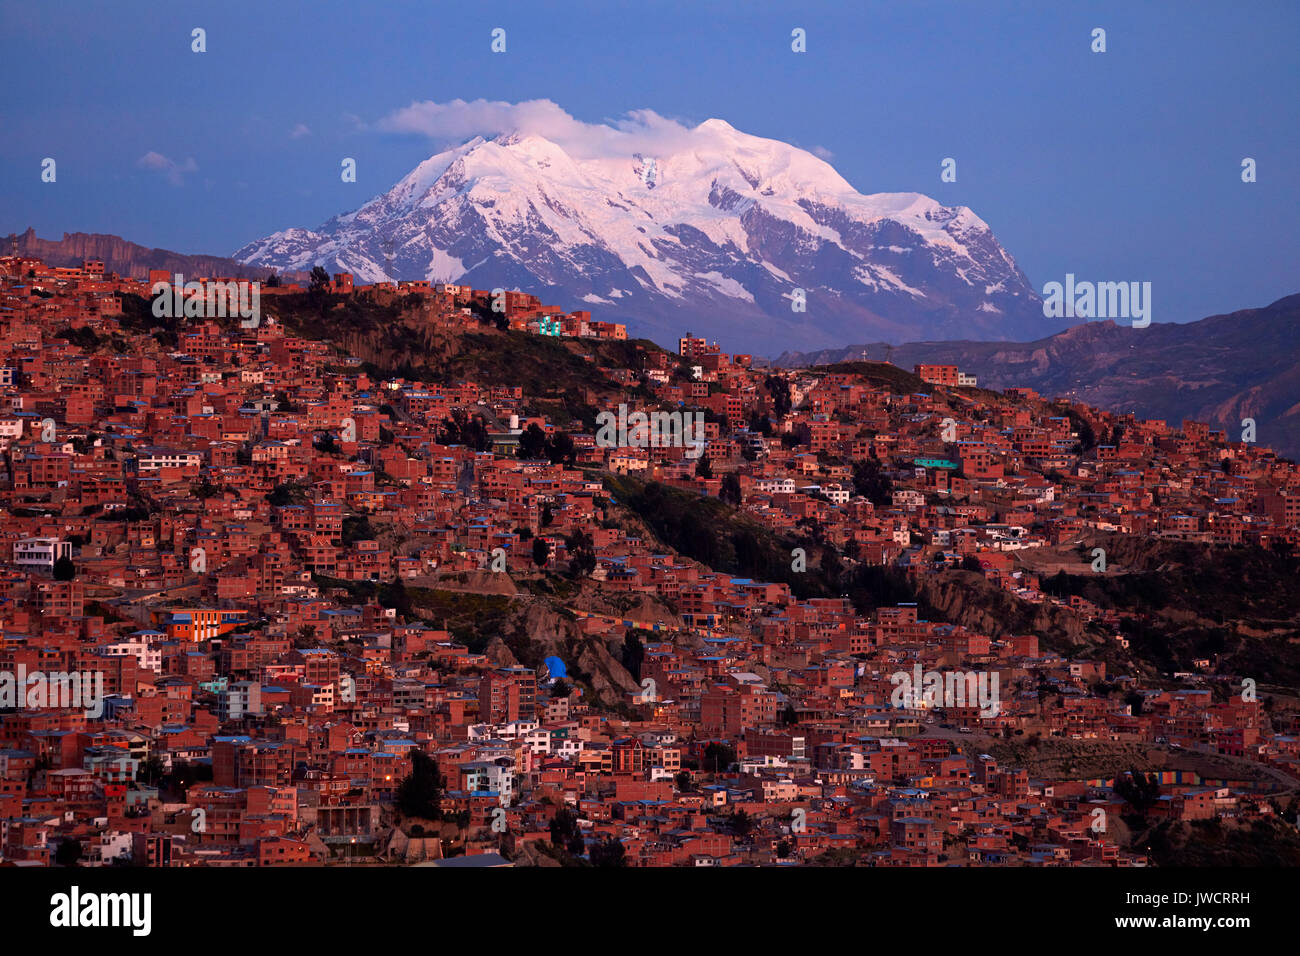 Illimani (6438m/21,122ft), and houses of La Paz, Bolivia, South America - Stock Image